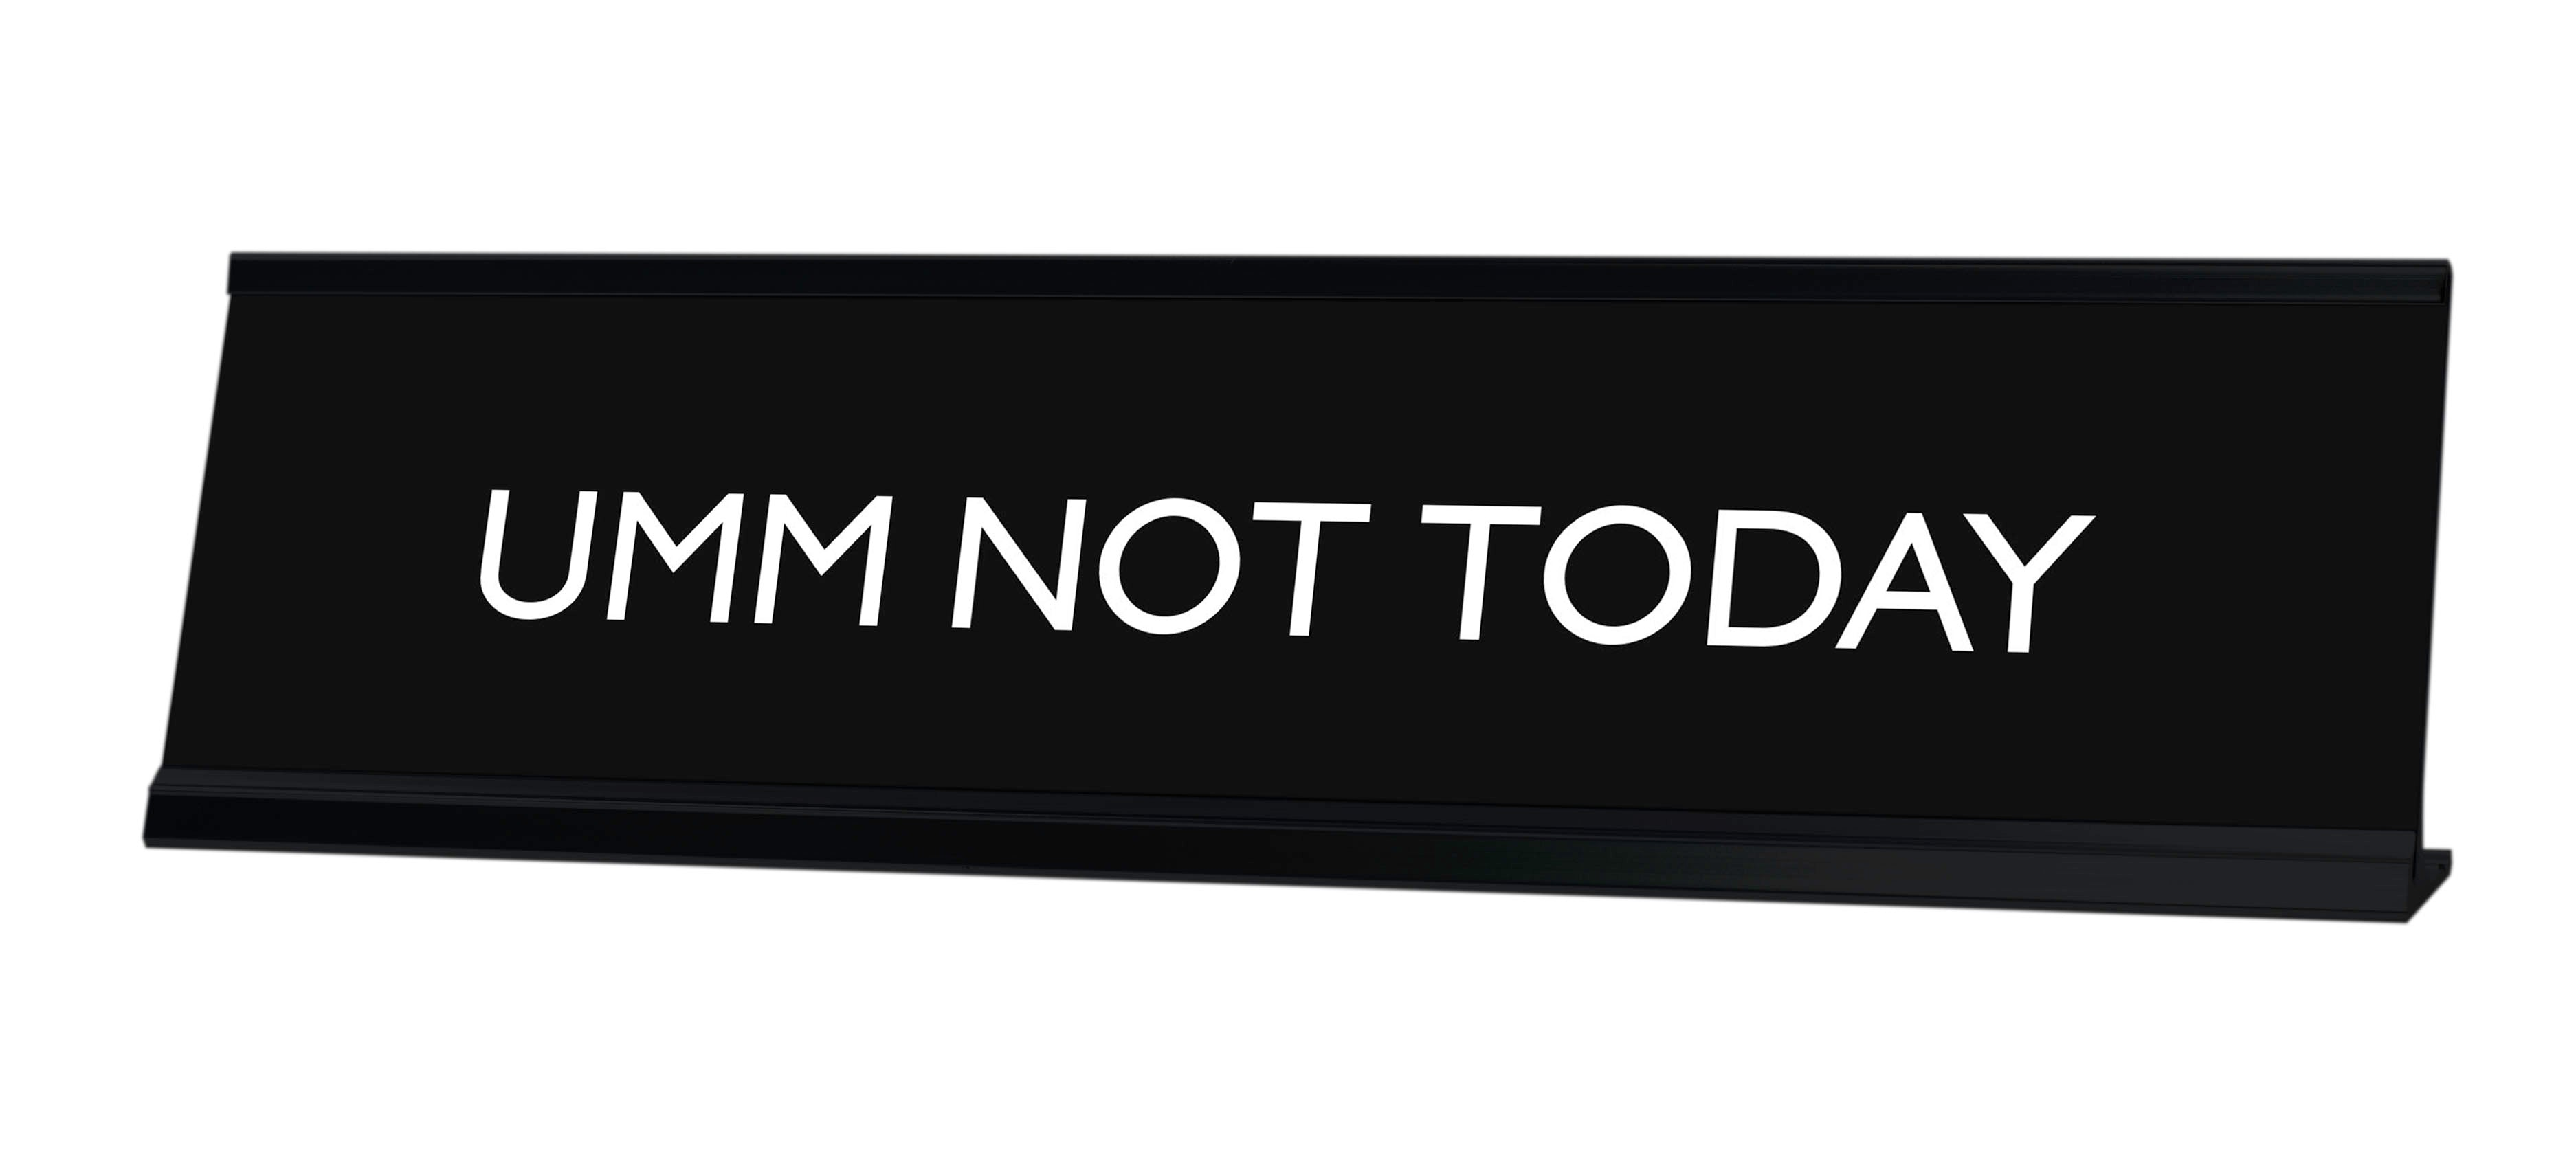 UMM NOT TODAY Novelty Desk Sign